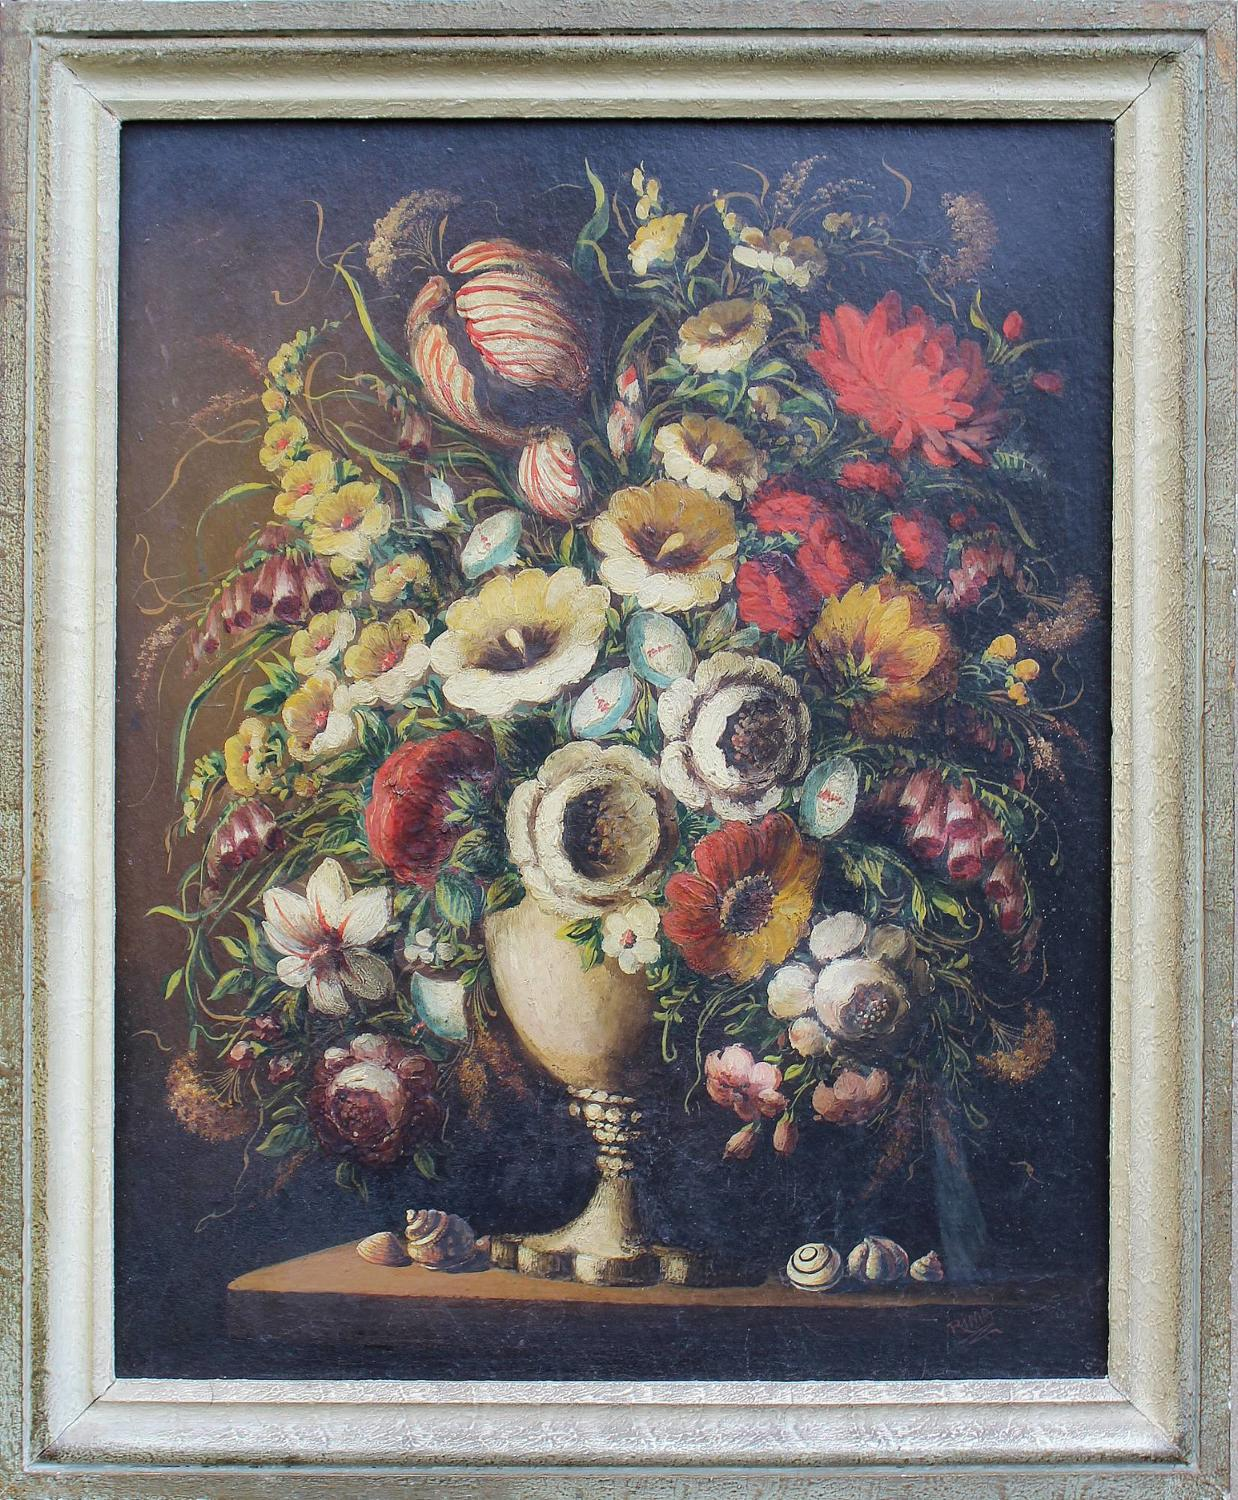 Still Life of a Vase of Flowers in 17th C Style, Oil on Board